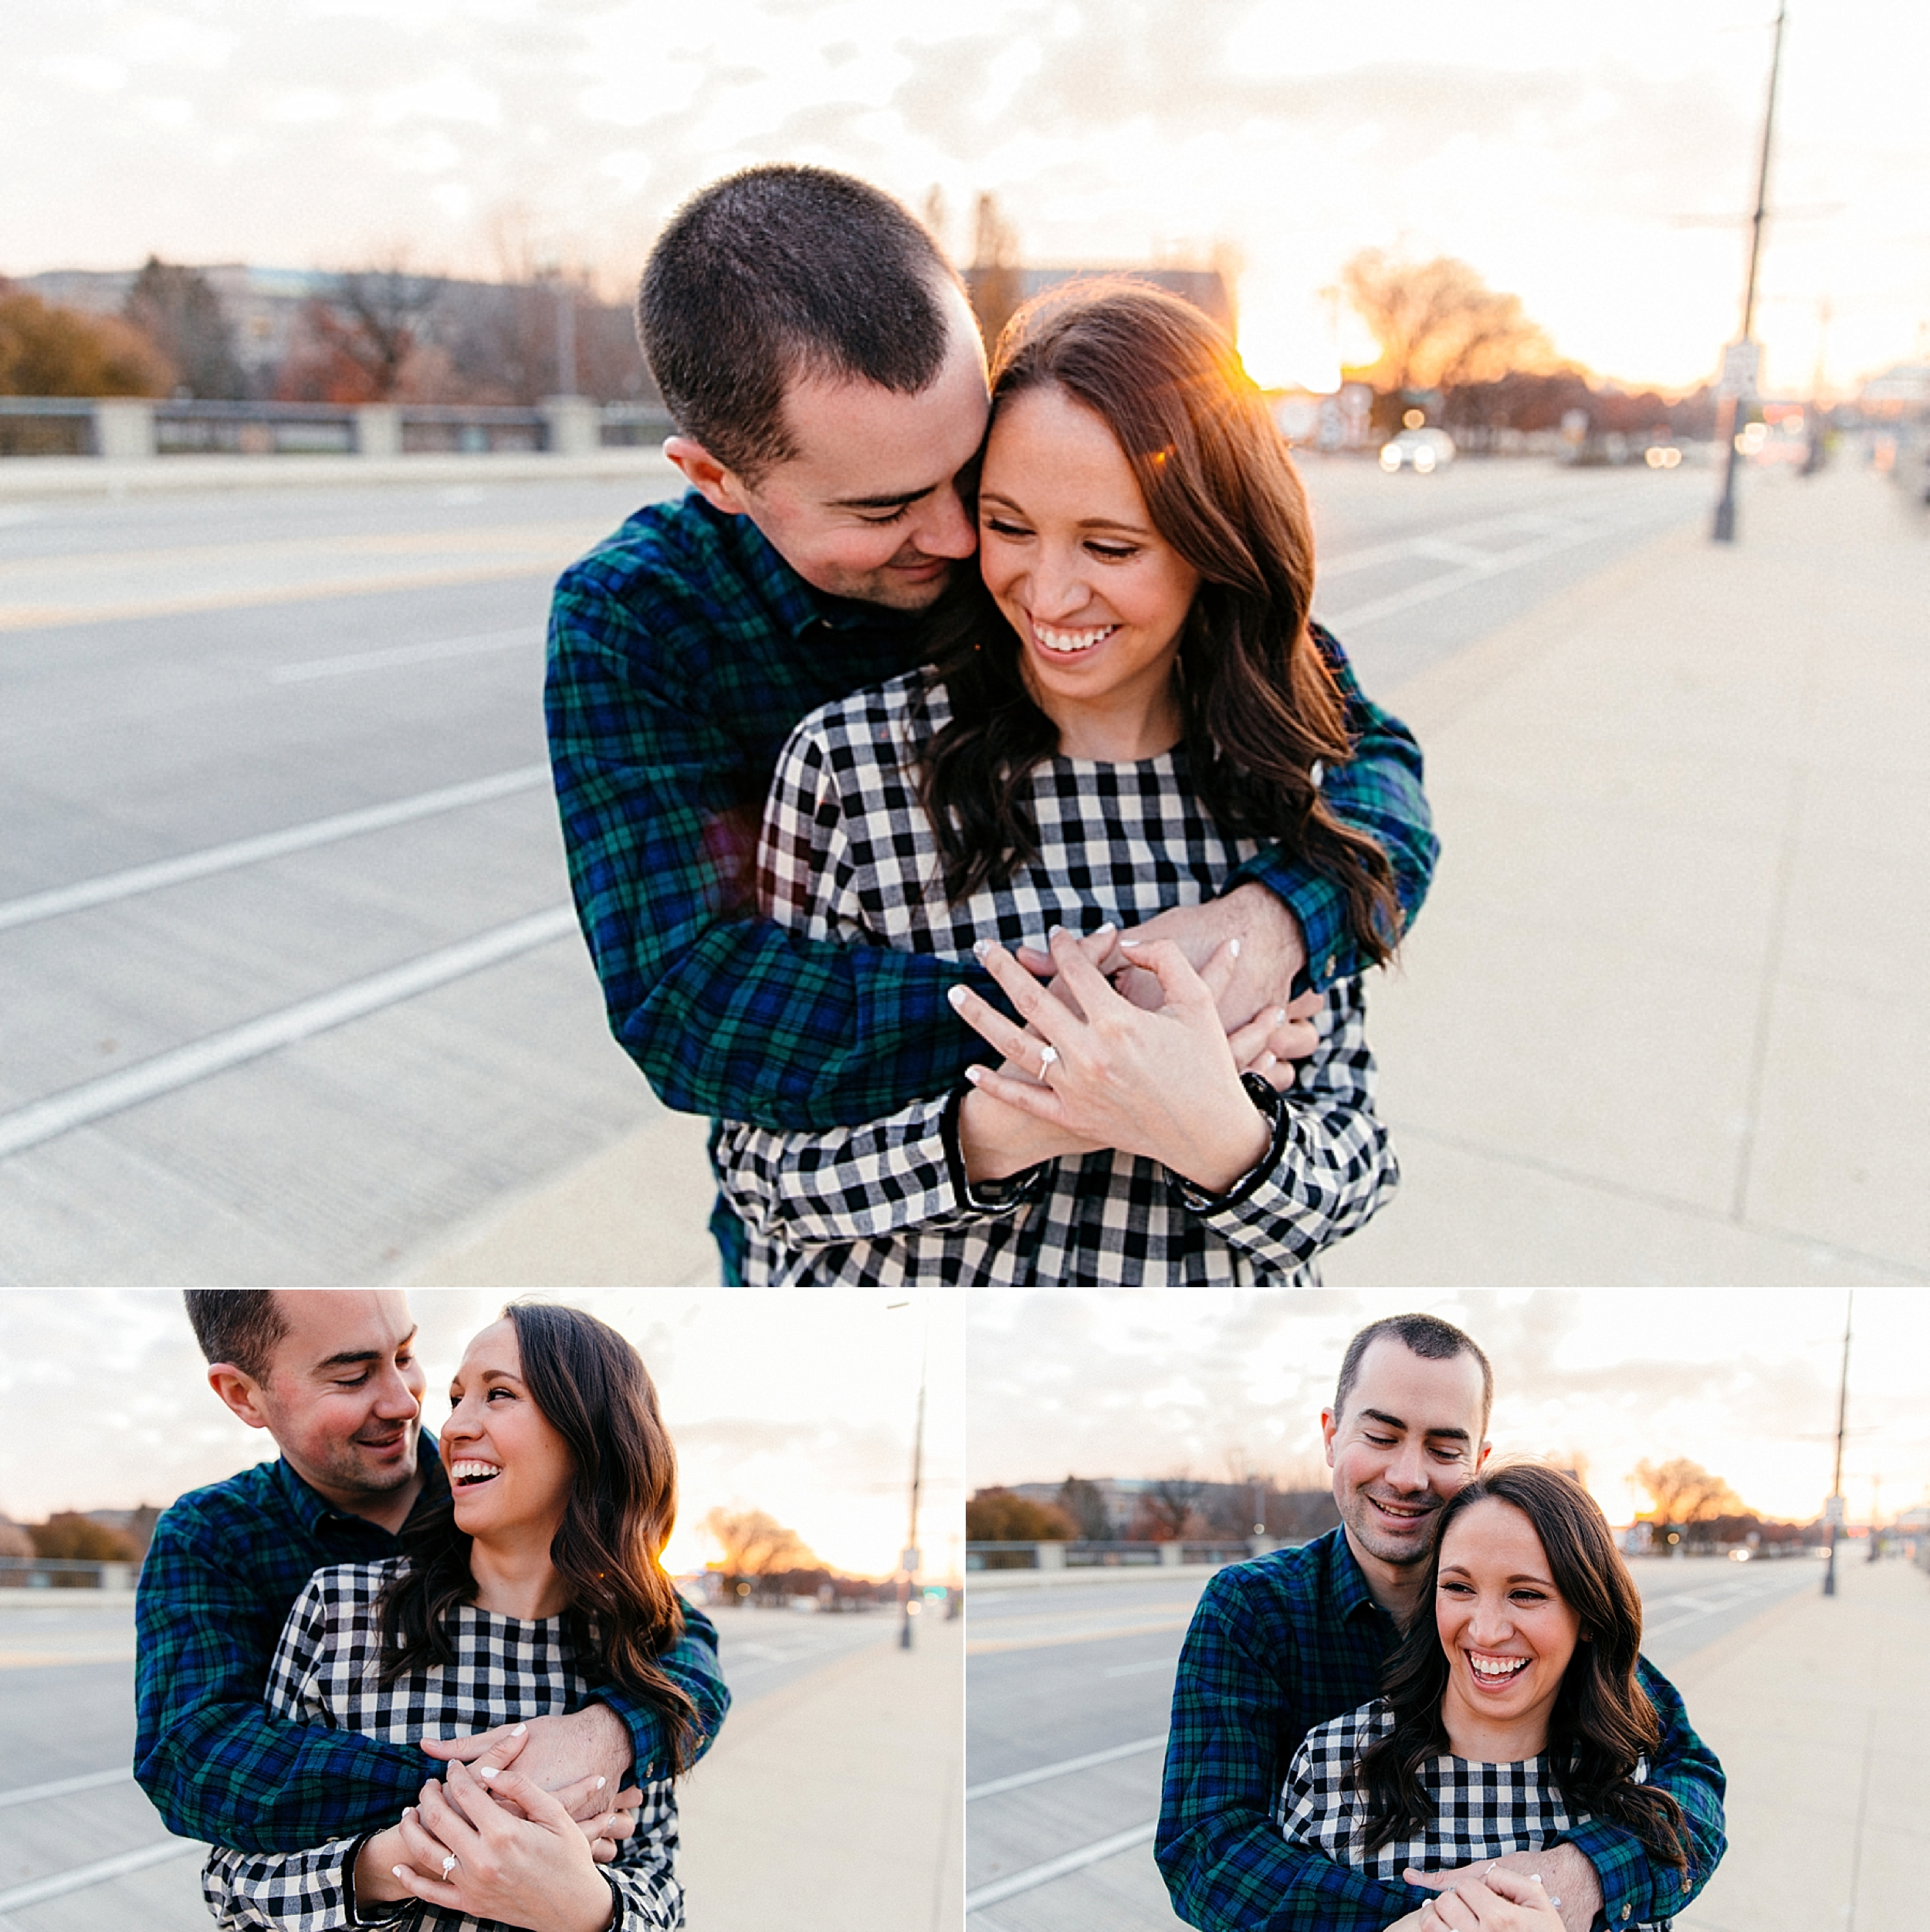 midwest-michigan-indiana-engagement-and-wedding-photographer-session-in-columbus-ohio_0006.jpg